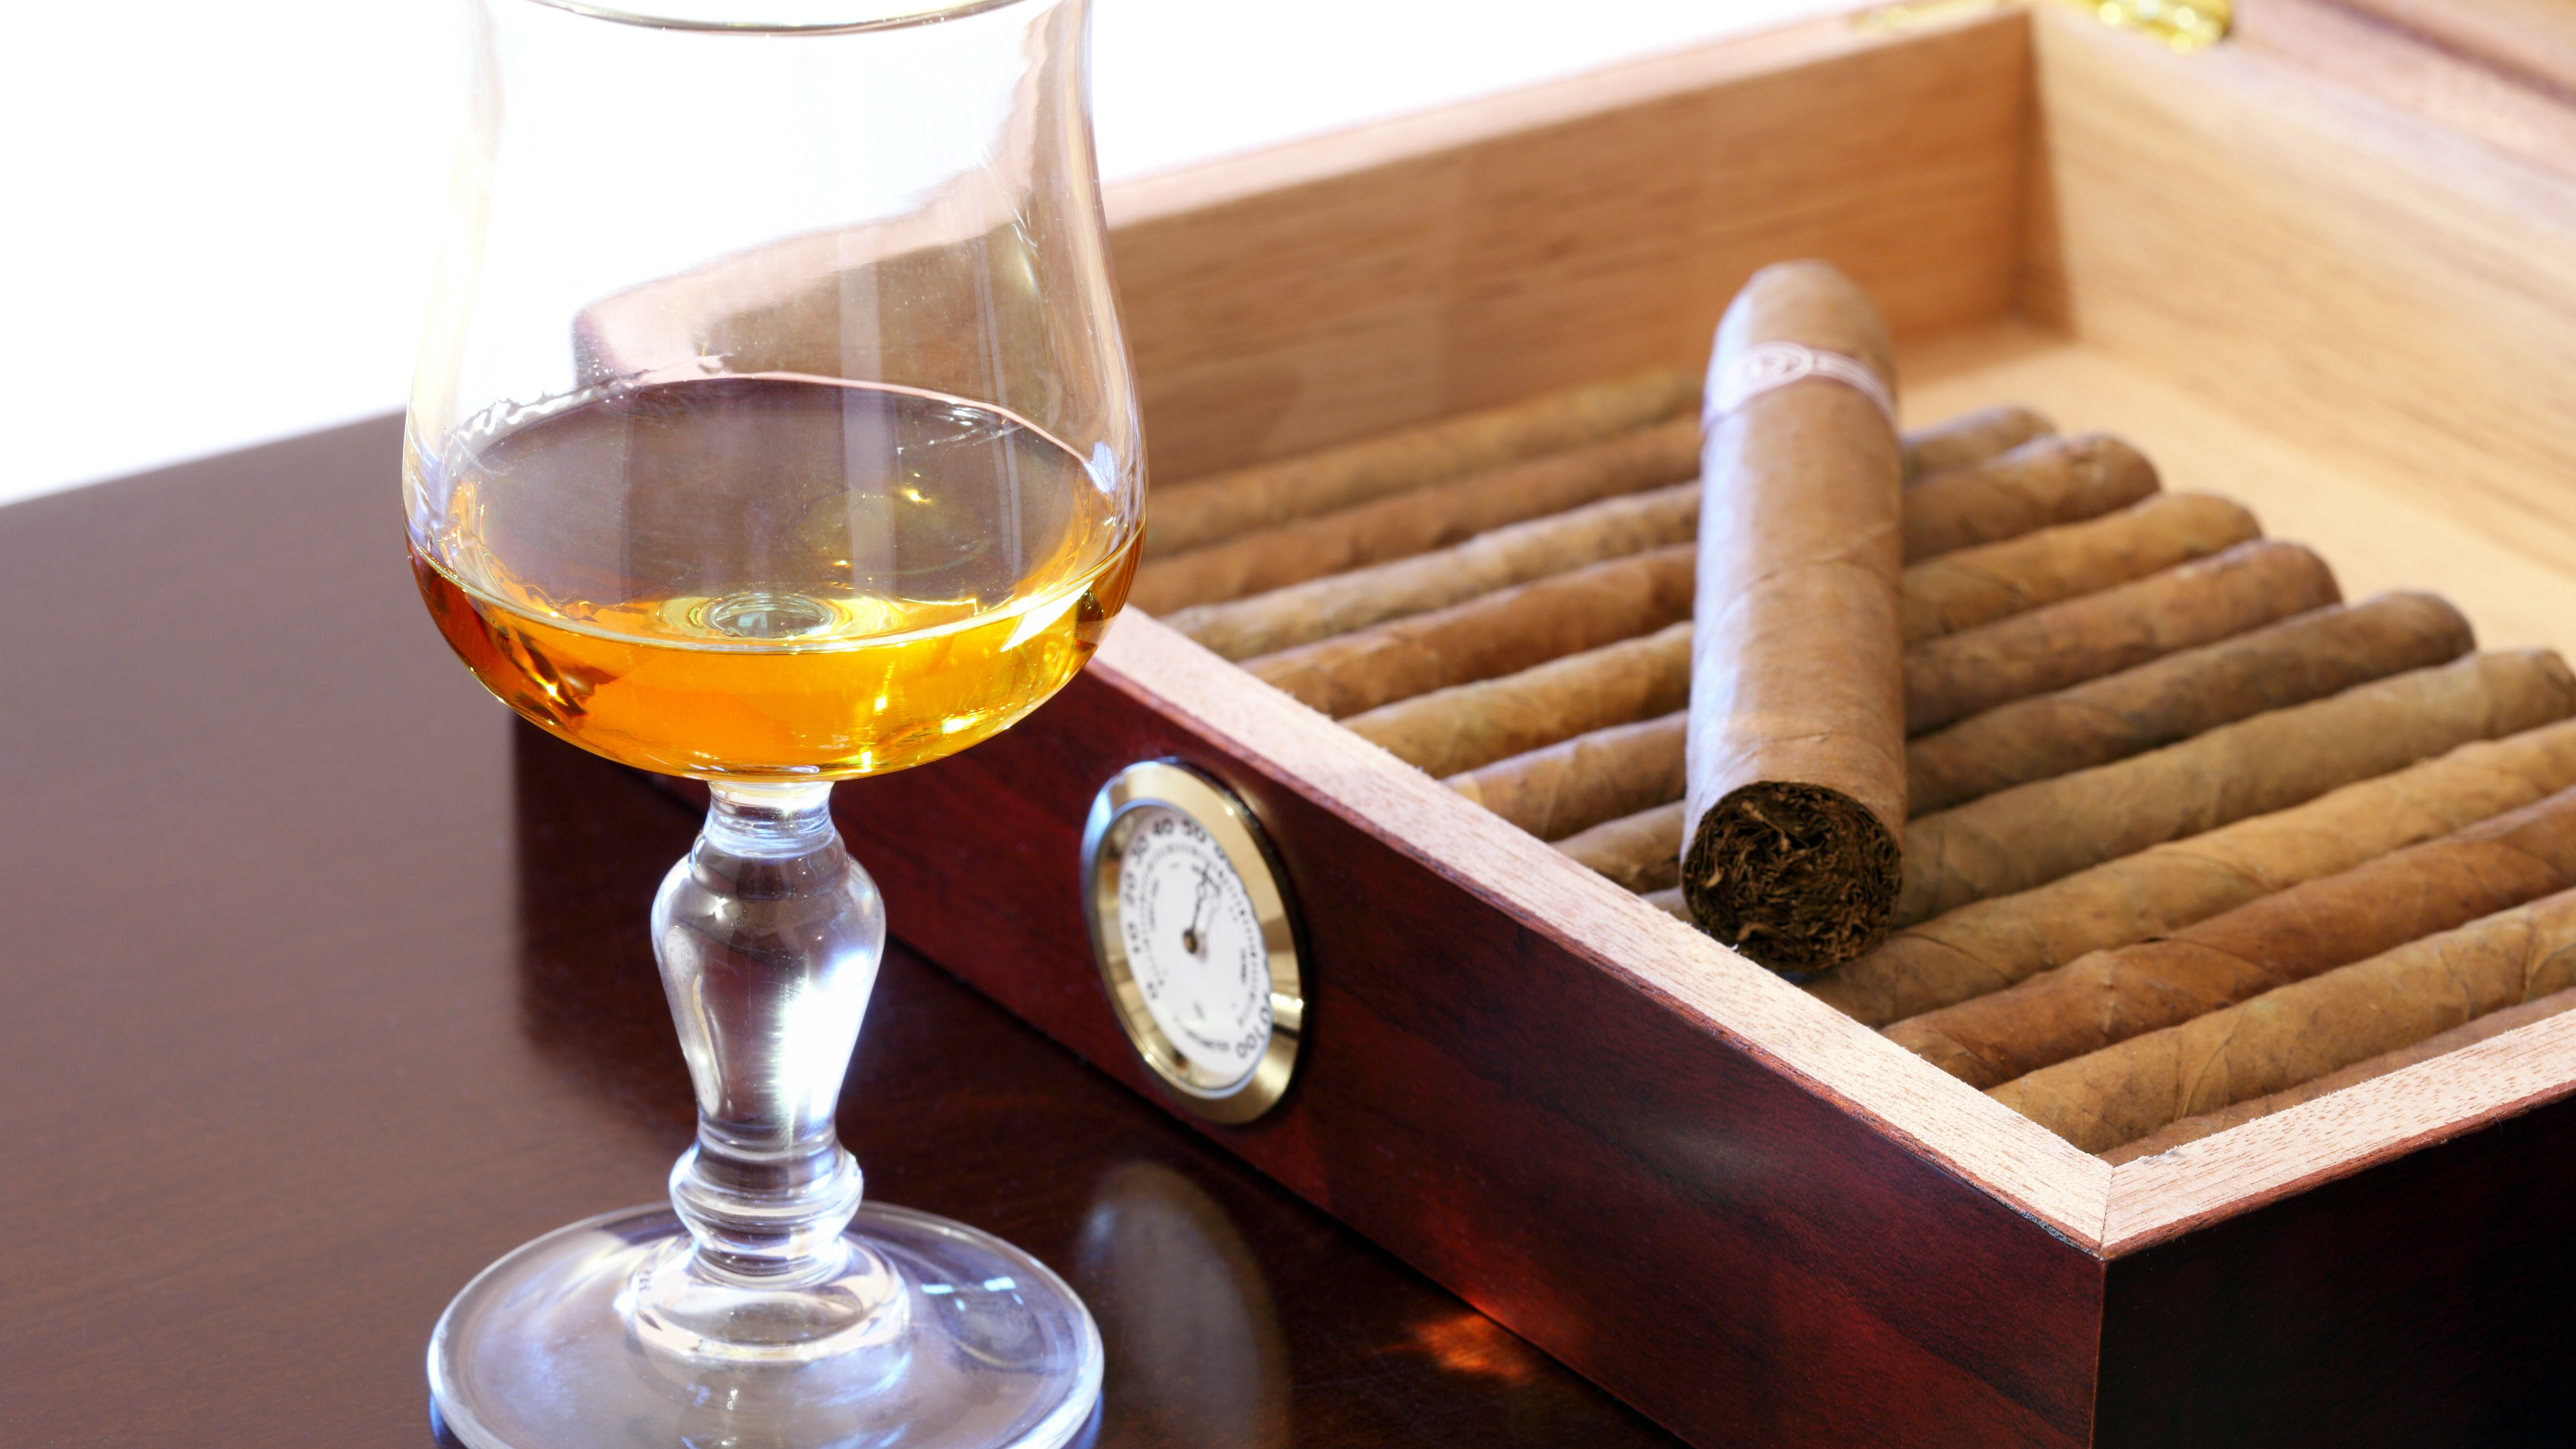 Is It Necessary to Age Cigars in a Humidor?